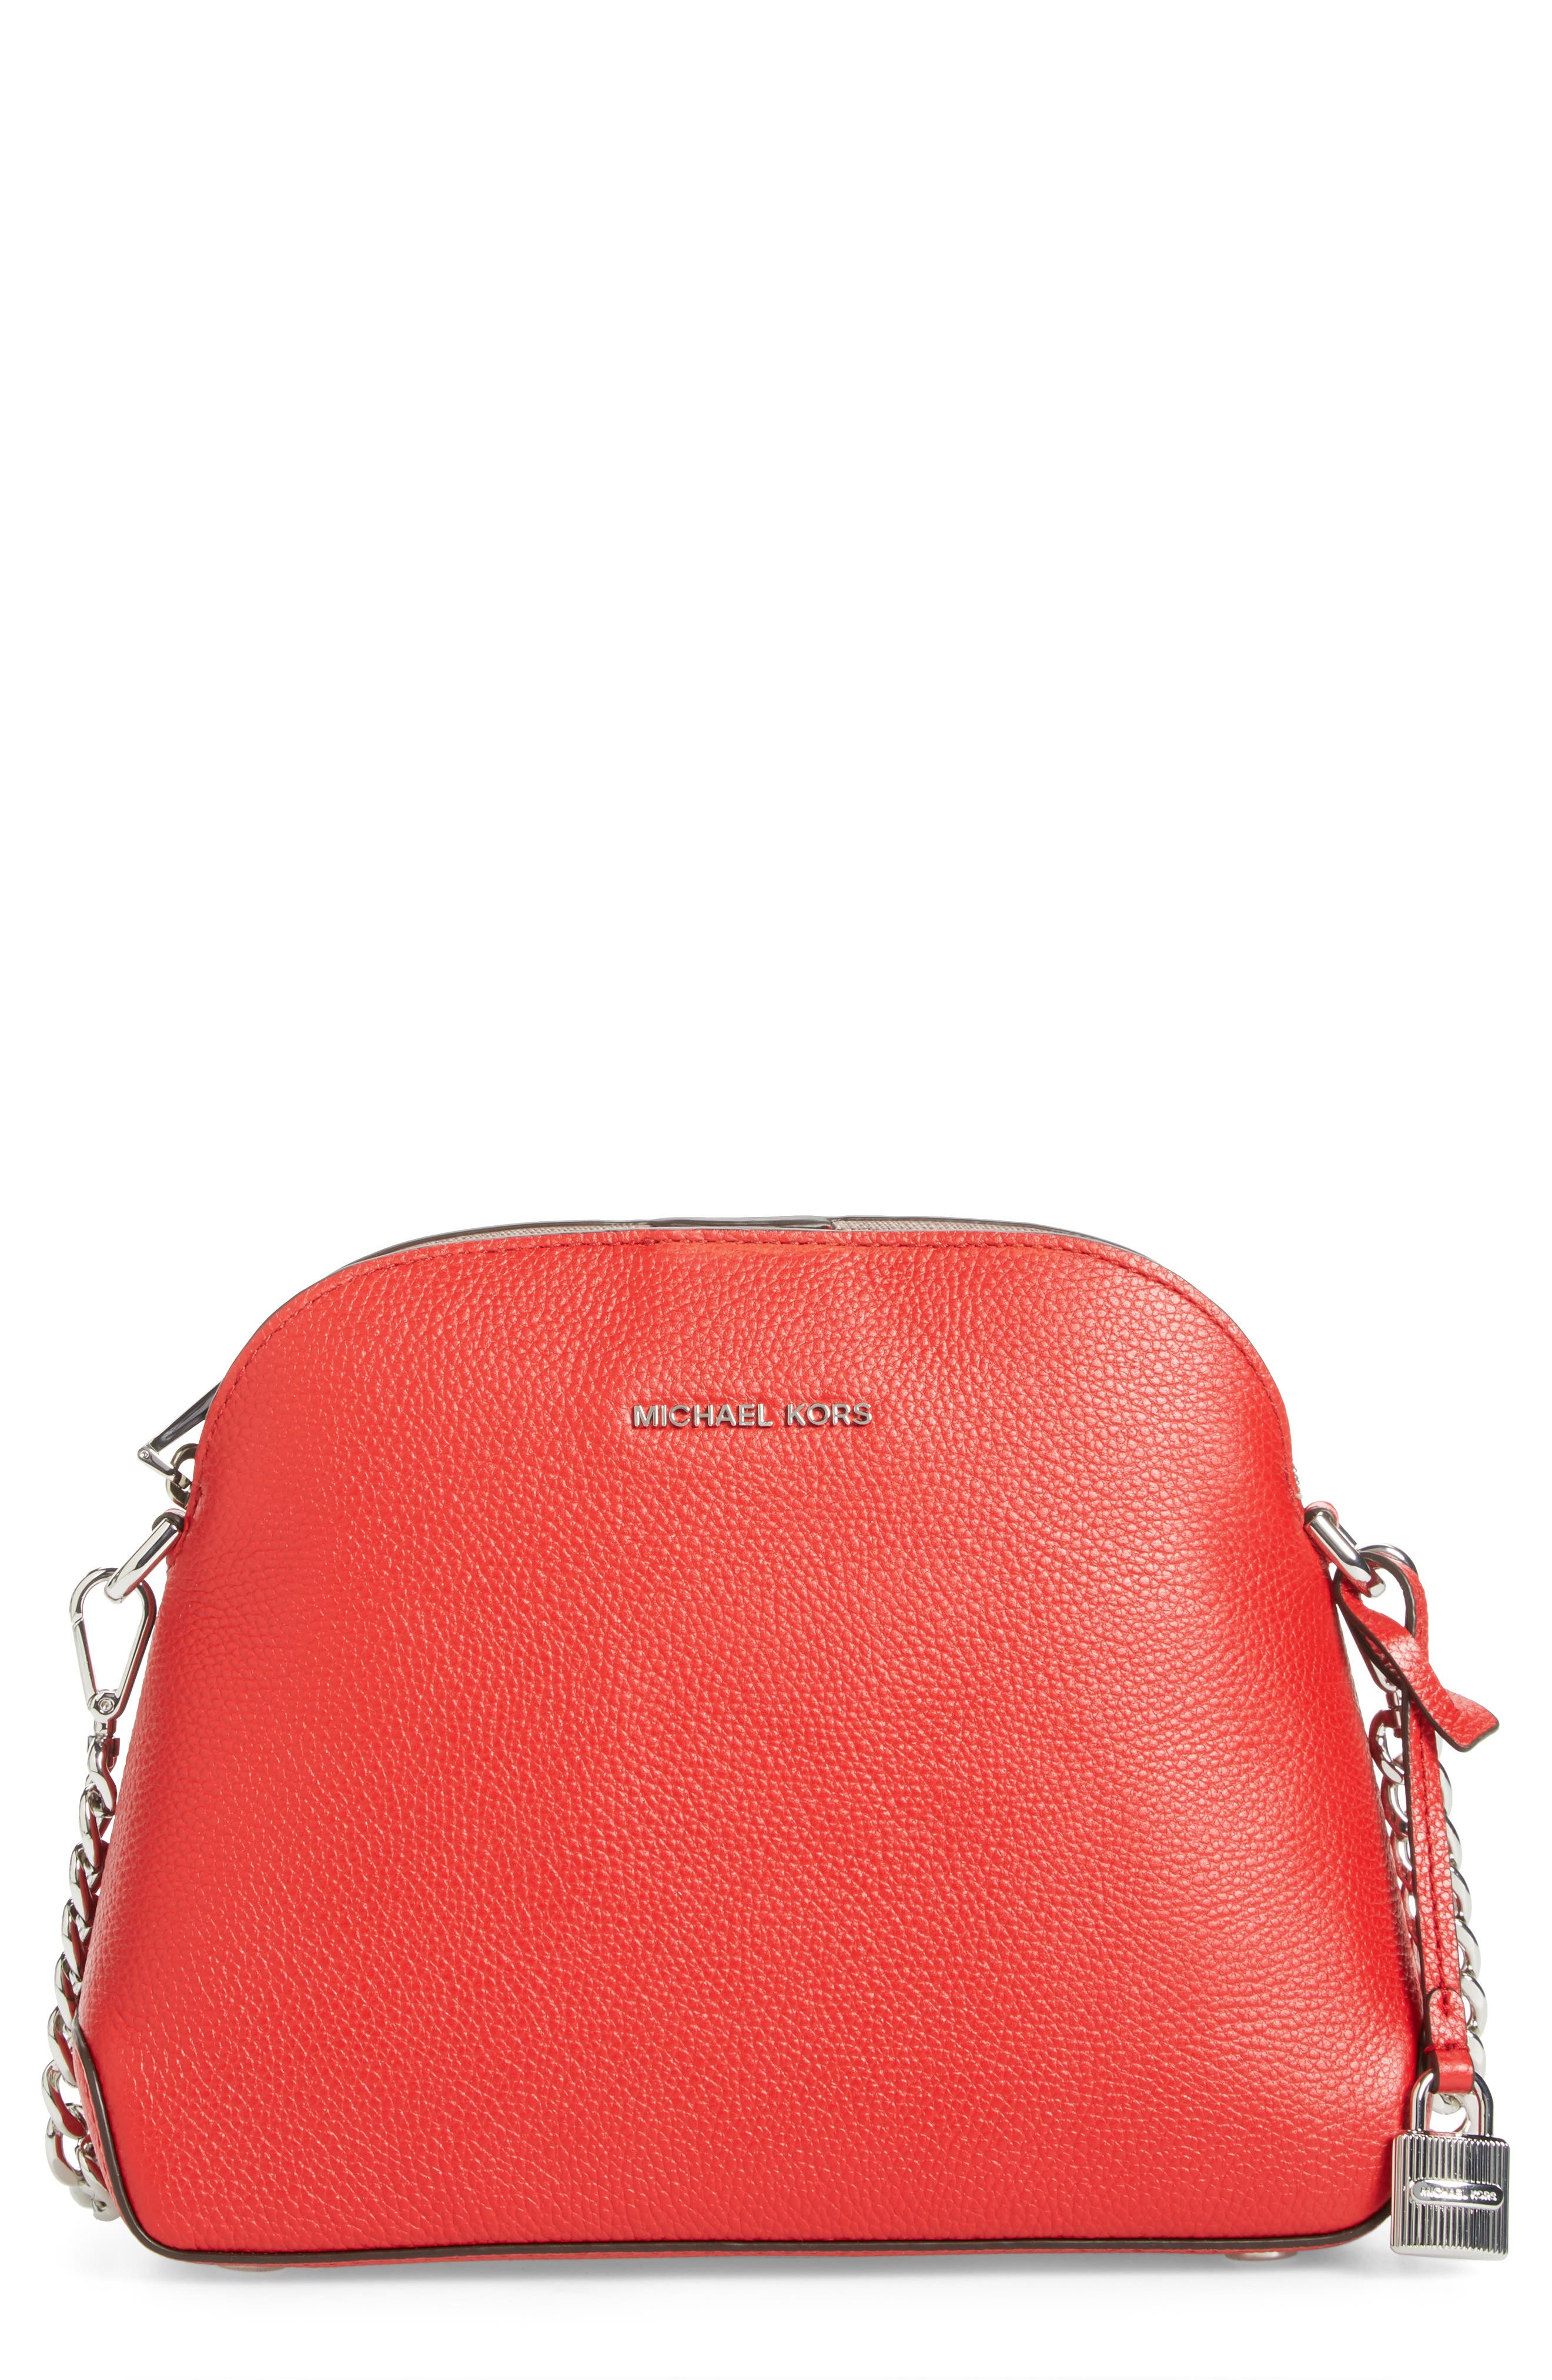 Main Image - MICHAEL by Michael Kors Medium Mercer Leather Dome Satchel